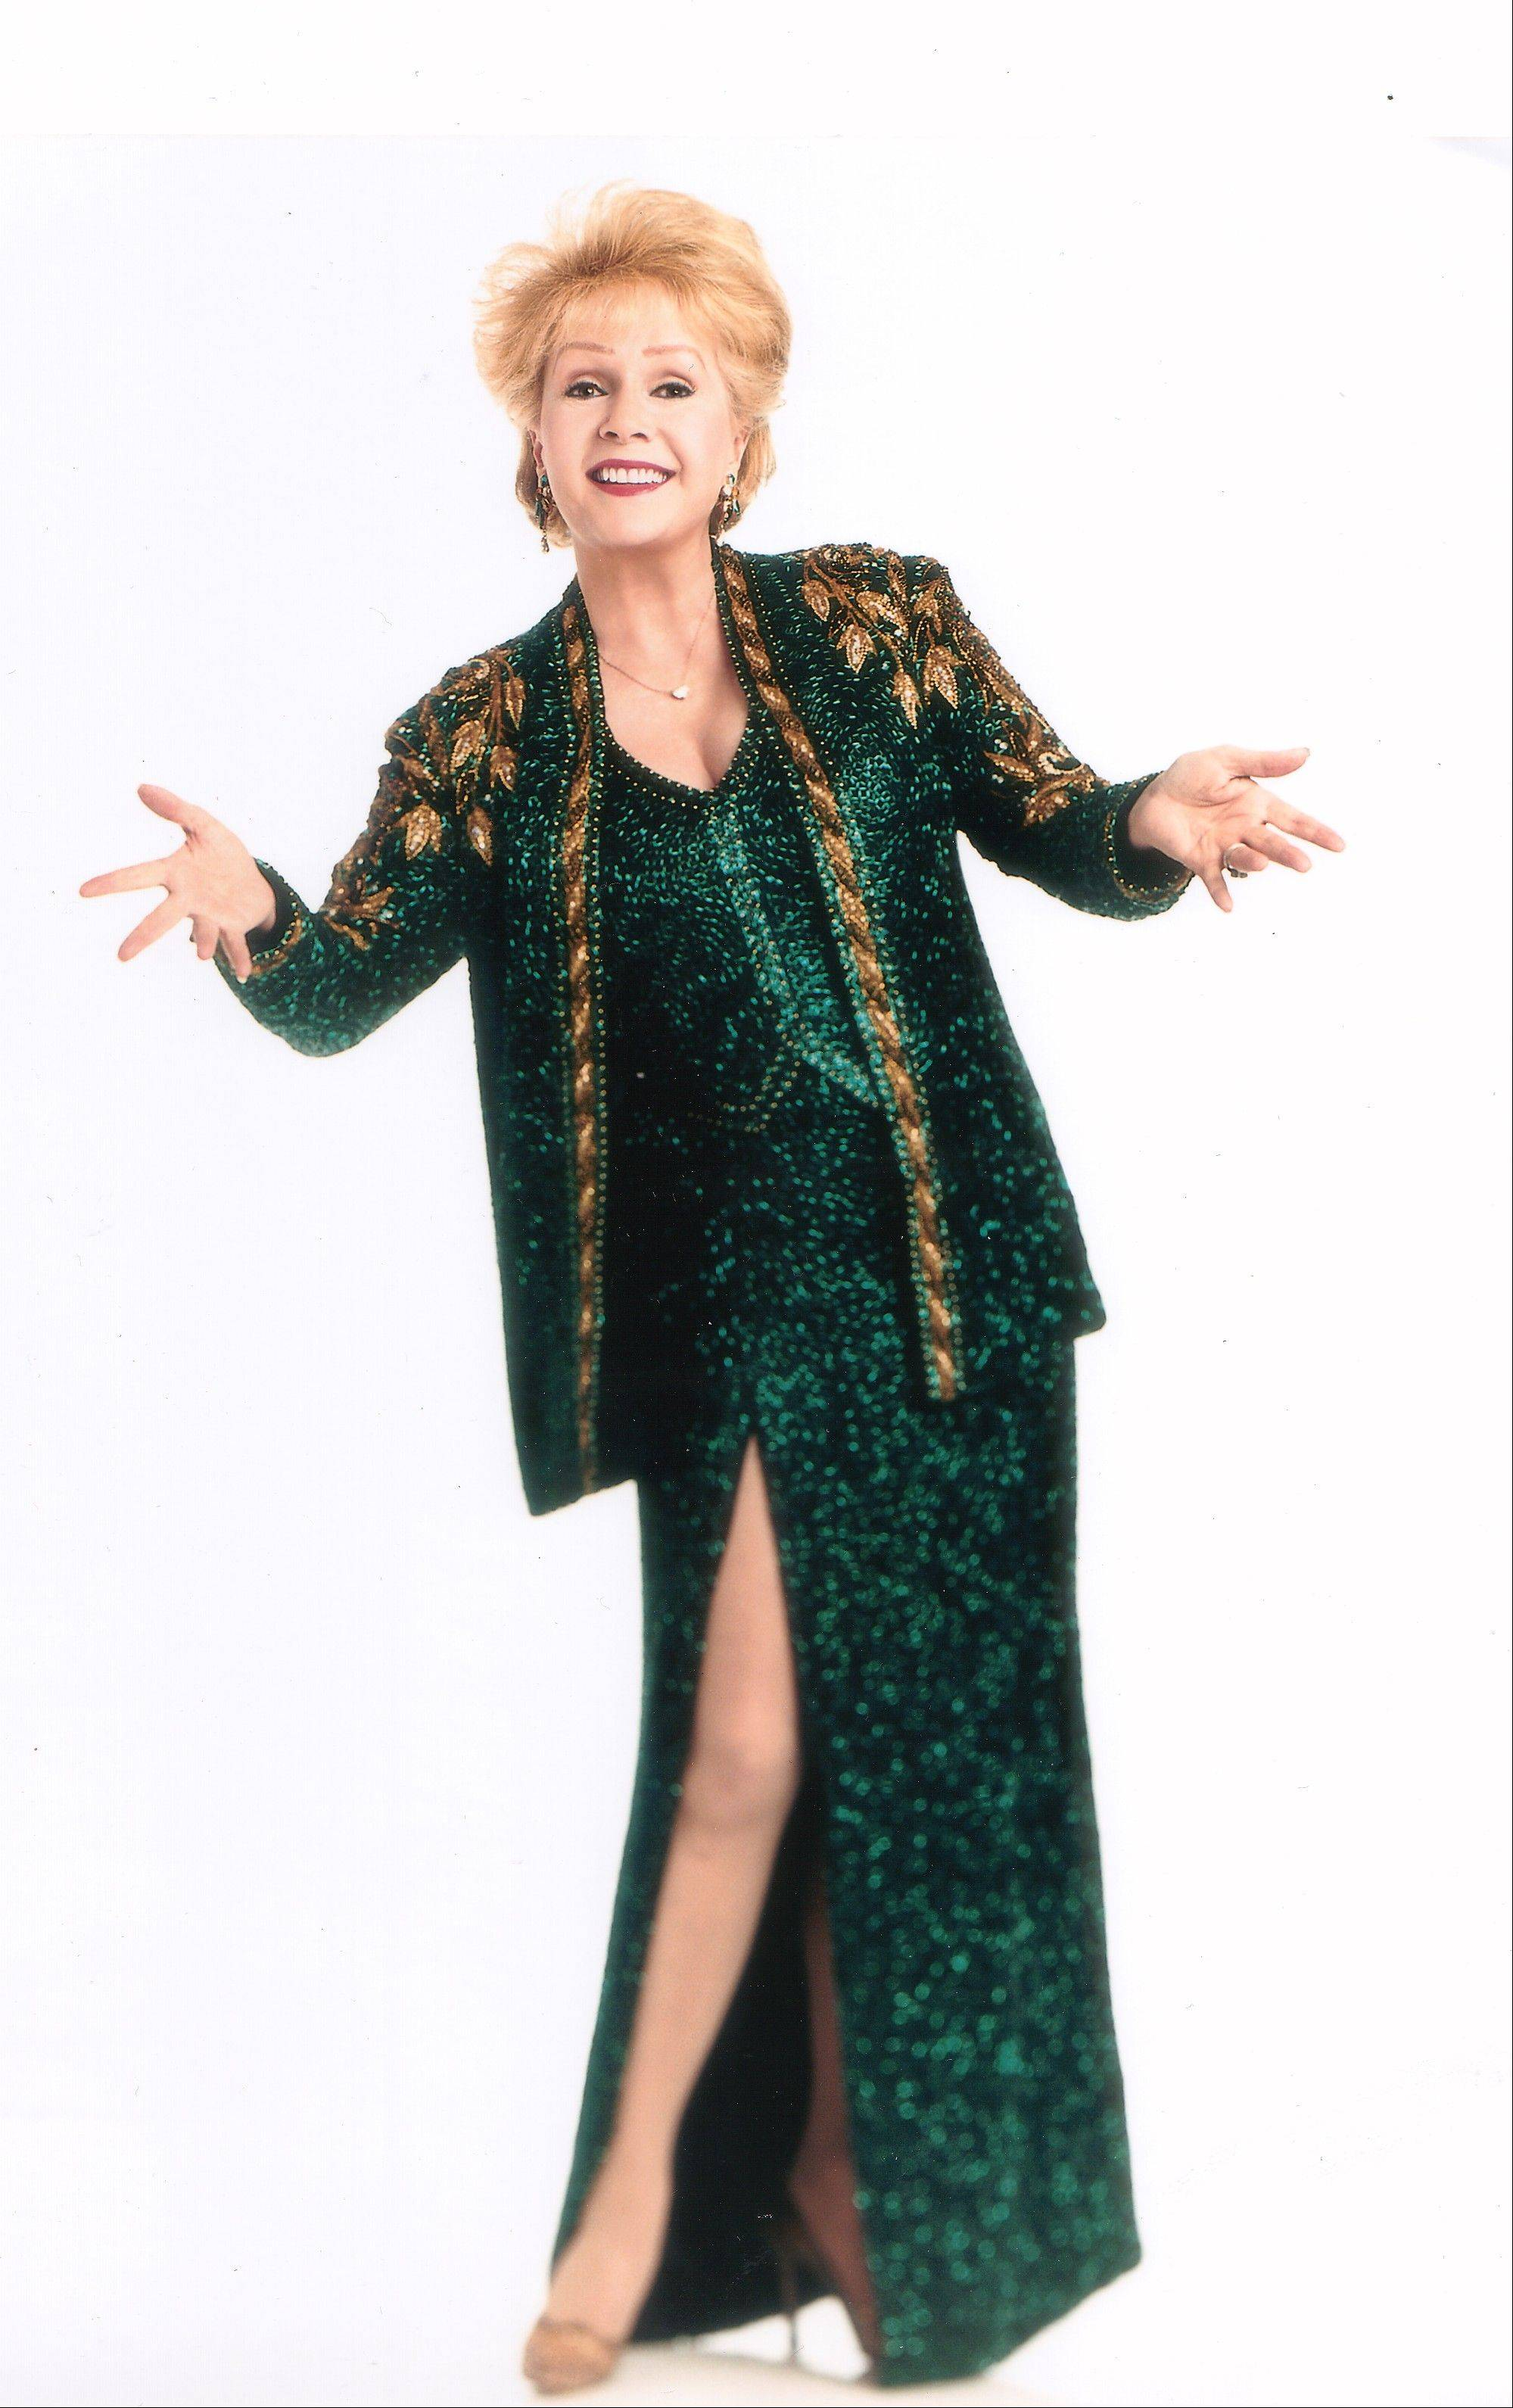 Hollywood legend Debbie Reynolds will perform three shows at the Drury Lane Theatre in Oakbrook Terrace on Monday and Tuesday, Sept. 17 and 18.